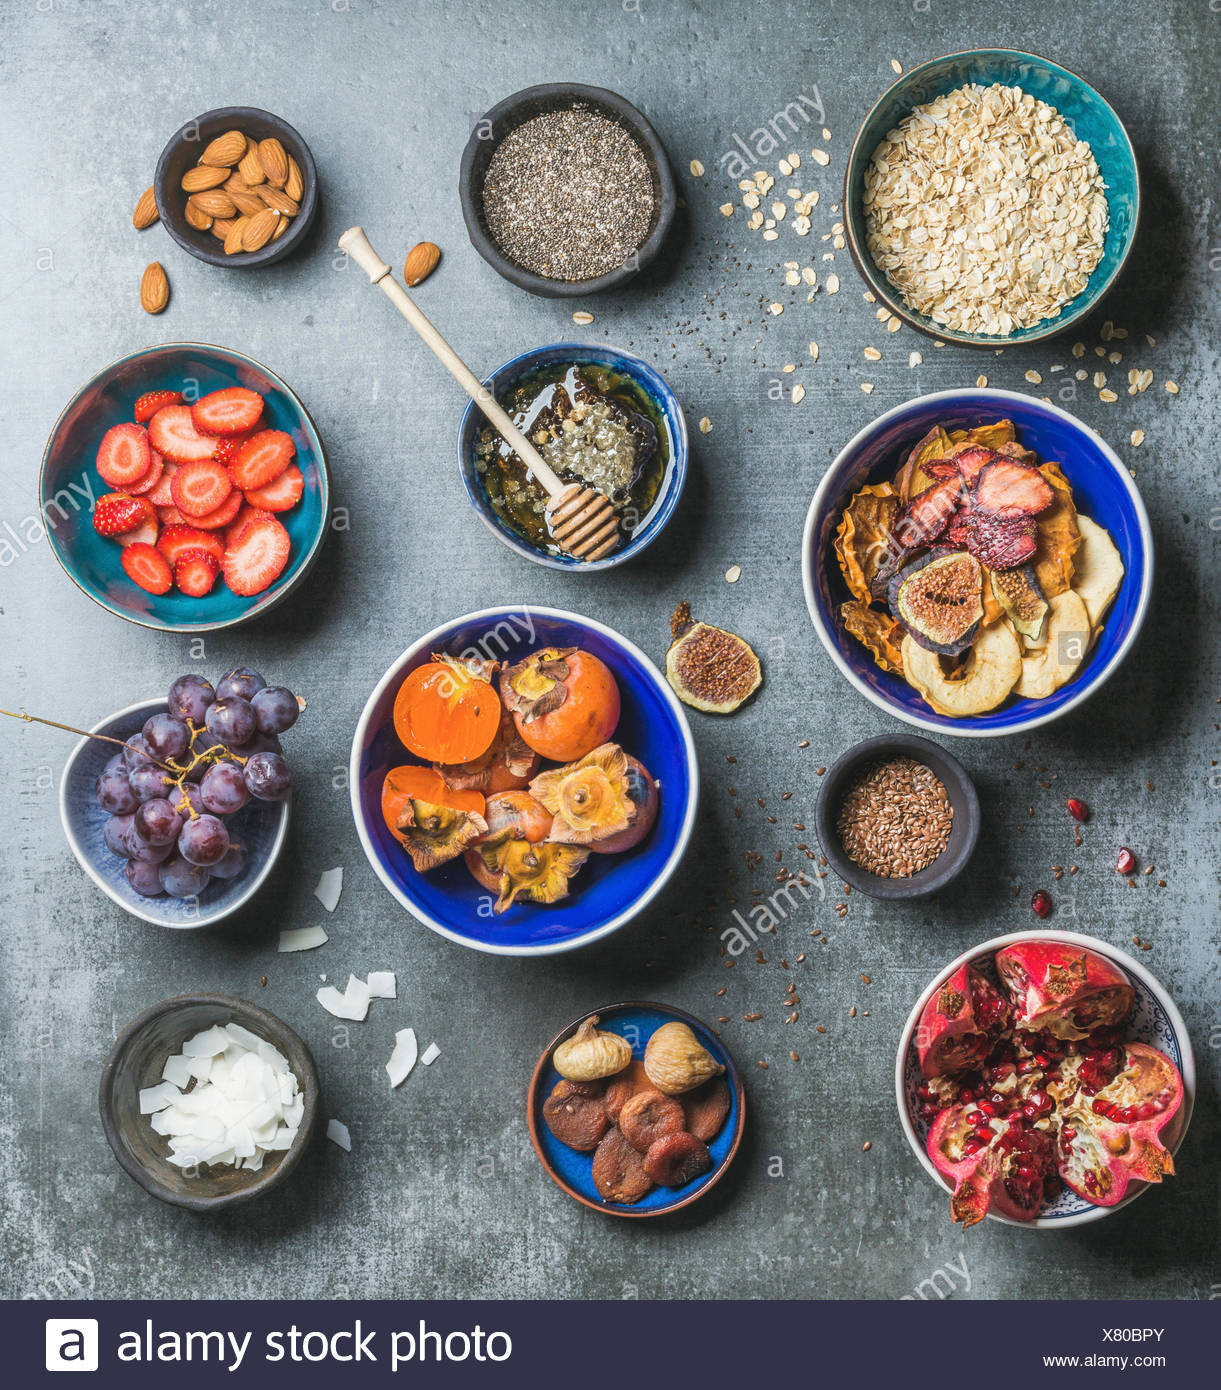 Ingredients for healthy breakfast over grey stone background, top view, square crop. Fresh and dried fruit, chia seeds, oatmeal, nuts, honey. Clean ea - Stock Image